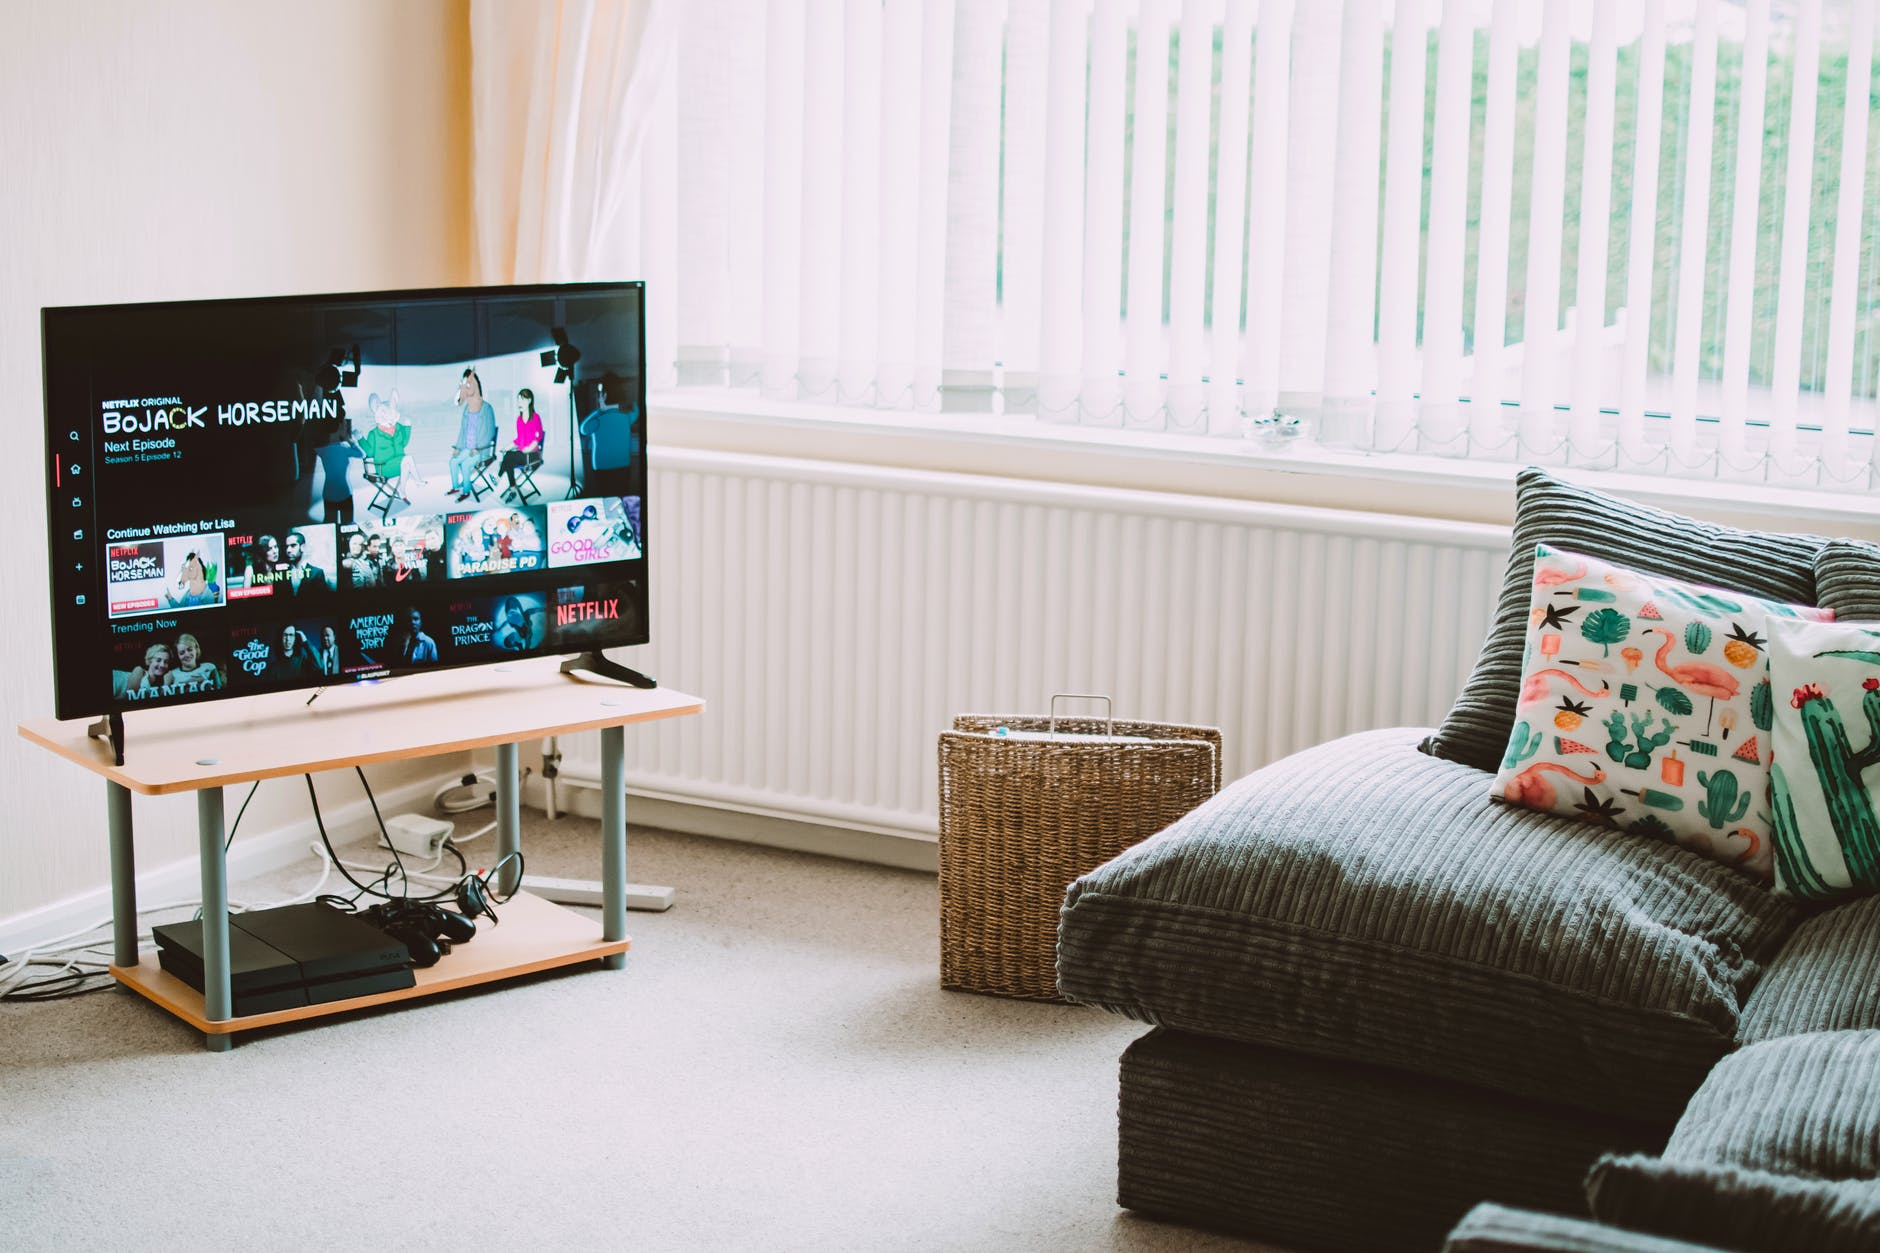 Monitor child's screen time - turned on flat screen smart television ahead